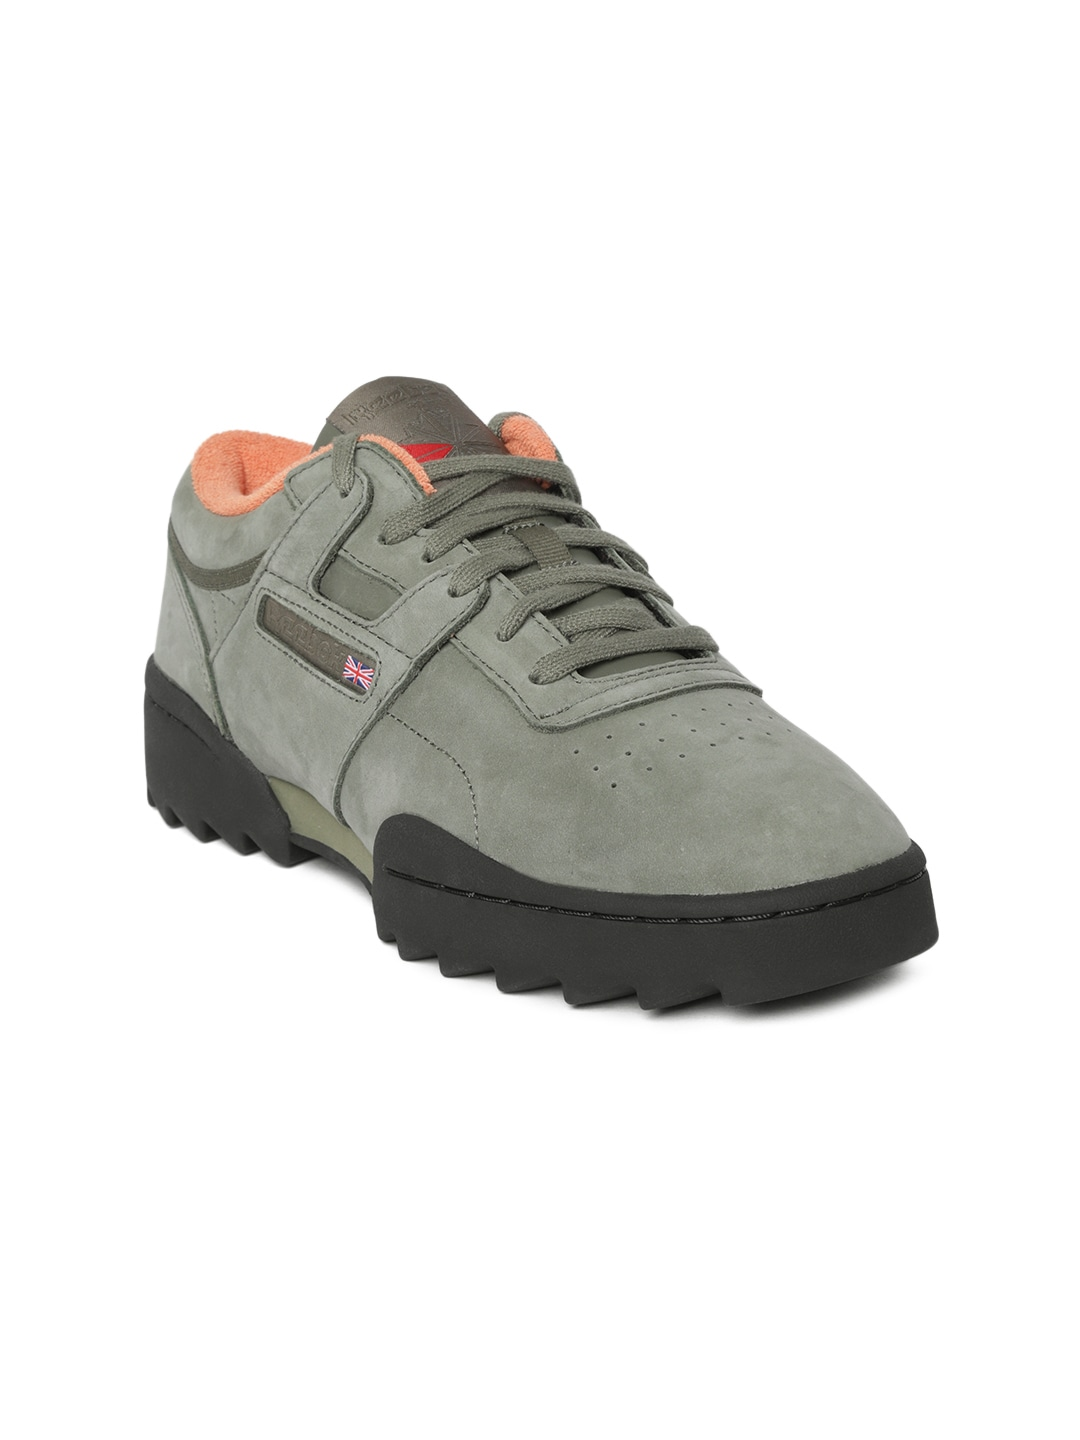 e43cf1da262 Reebok Princess Casual Shoes - Buy Reebok Princess Casual Shoes online in  India